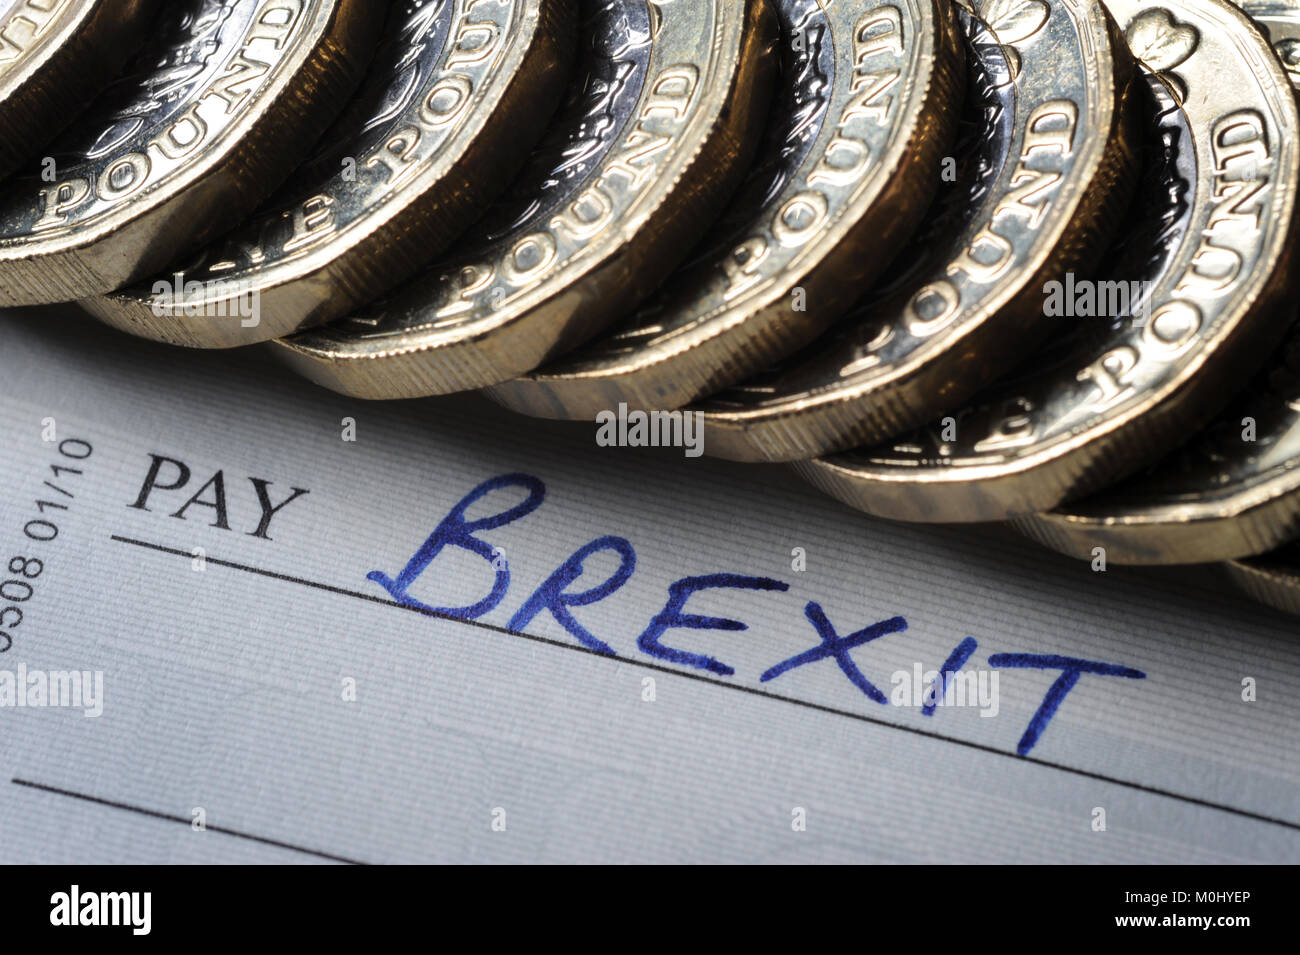 CHEQUE BOOK WITH 'BREXIT' PAY NAME WITH ONE POUND COINS RE BREXIT THE EU EUROPEAN UNION LEAVING REFERENDUM - Stock Image